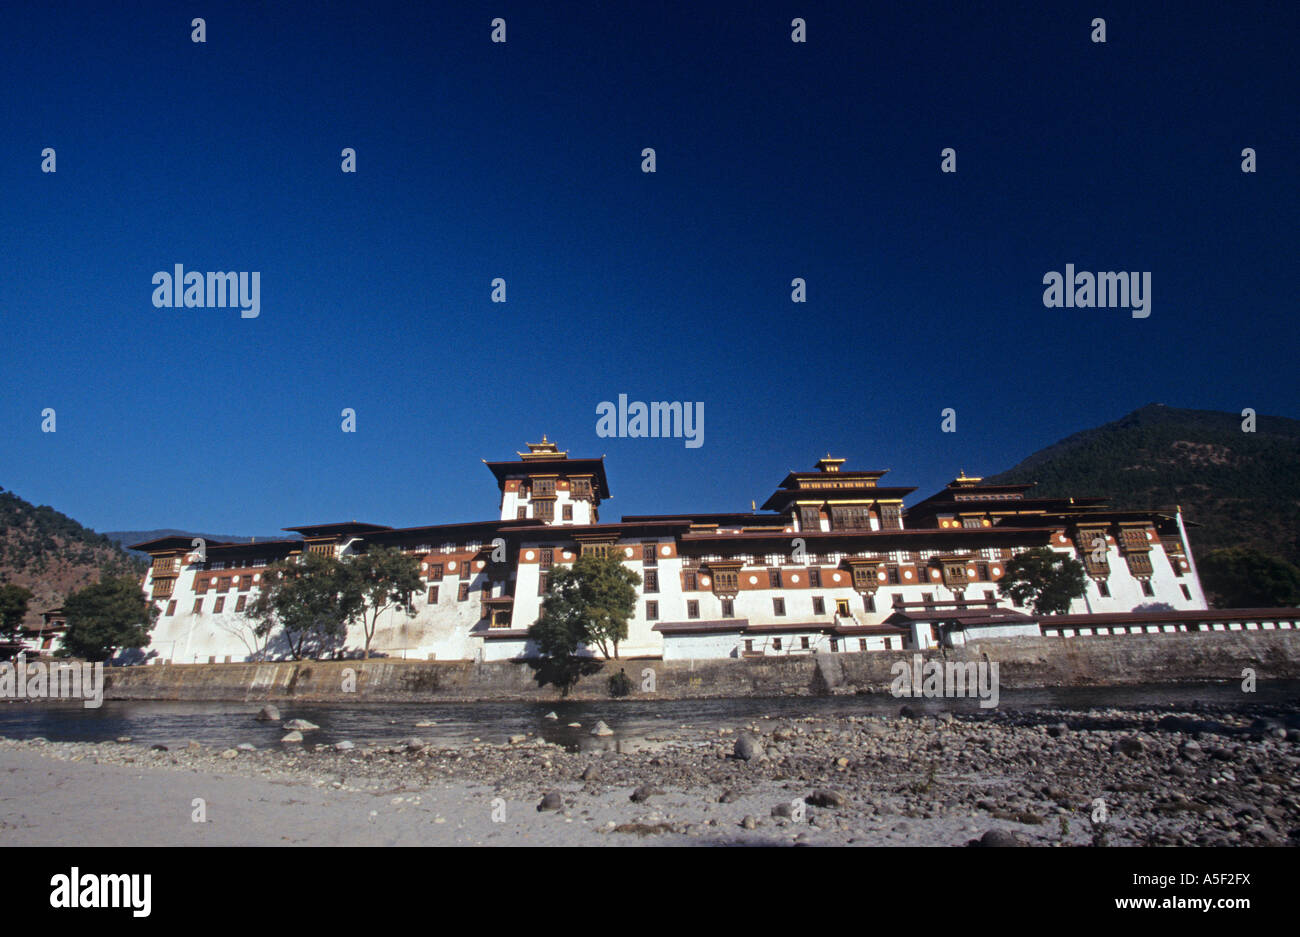 The facade view of a monastery in Bhutan a land of the thunder dragon - Stock Image